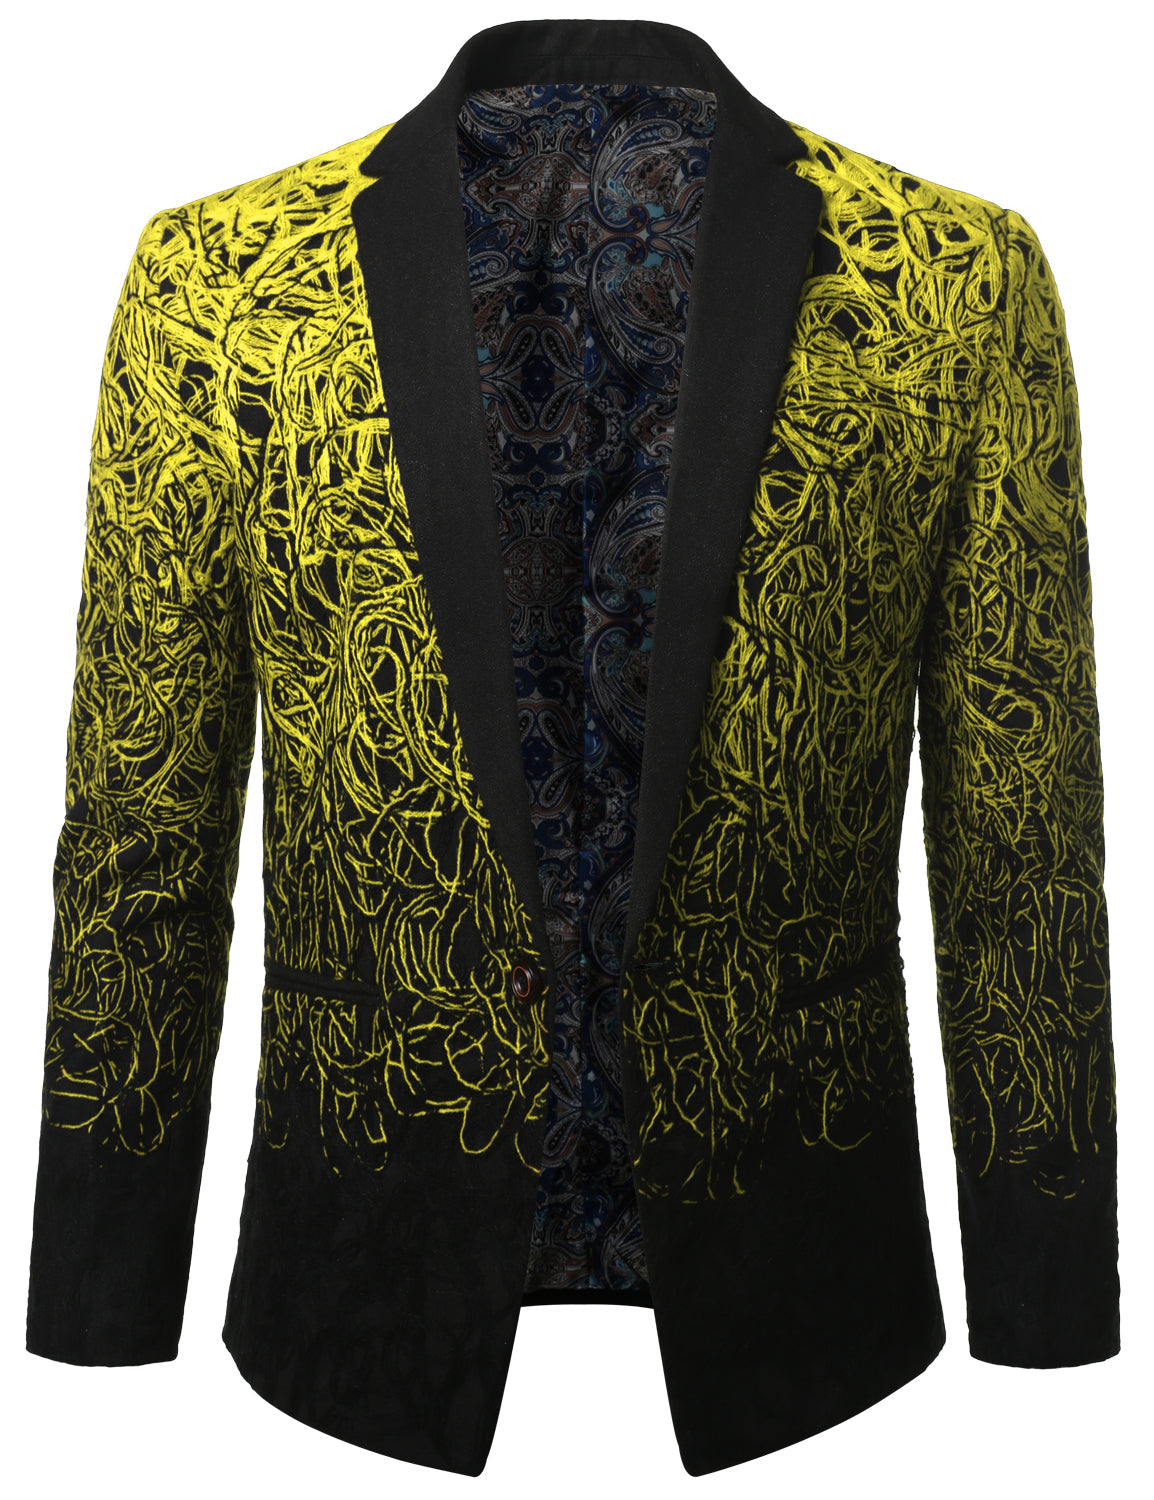 YELLOW Mens Two Tone Gradient Extra Slim Fit Blazer Jacket - MONDAYSUIT